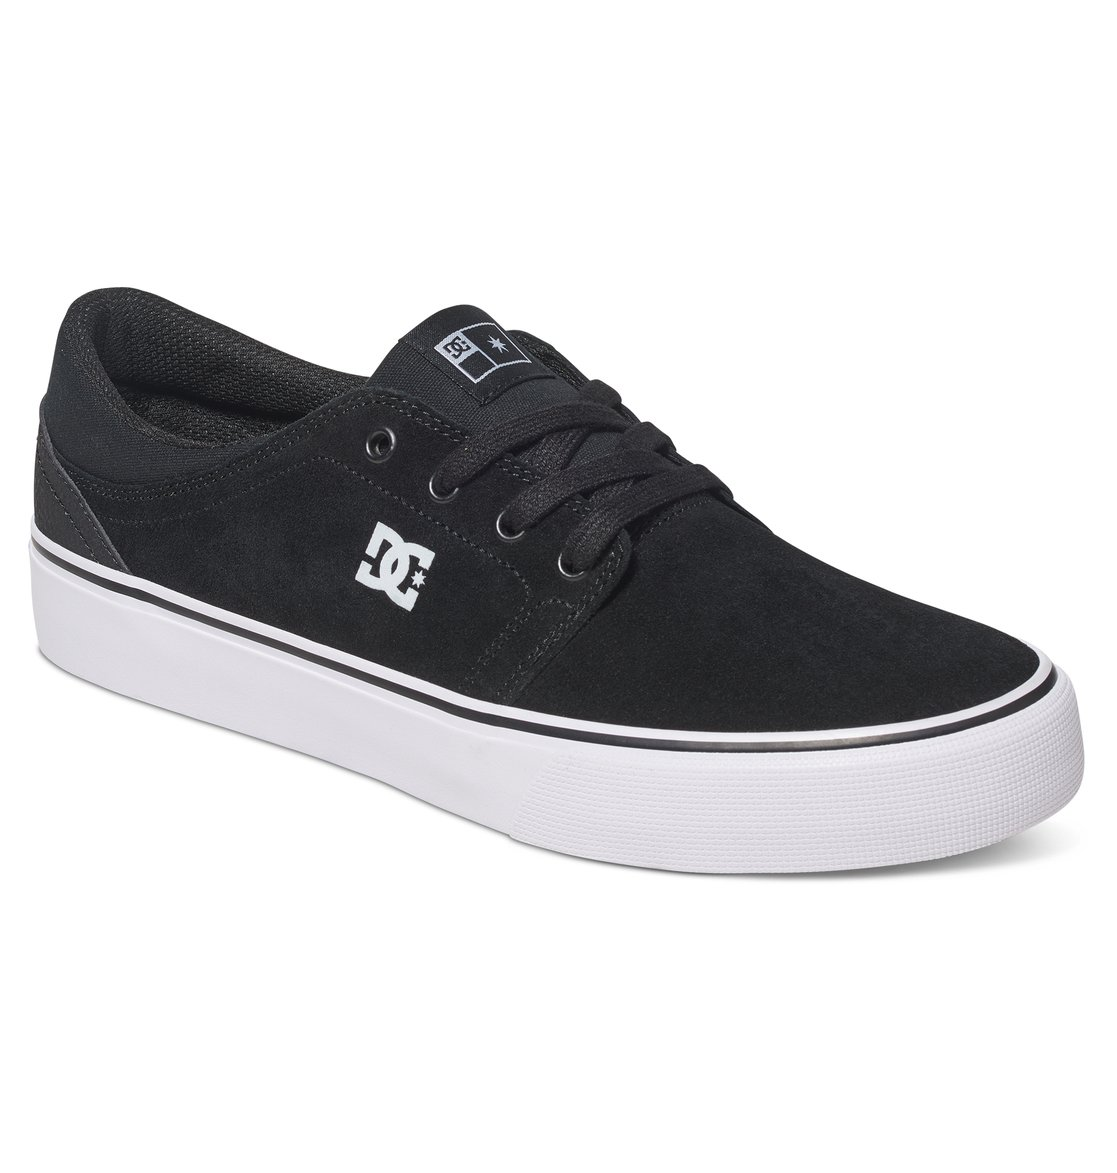 Dc Trase S Shoes Timber Uk